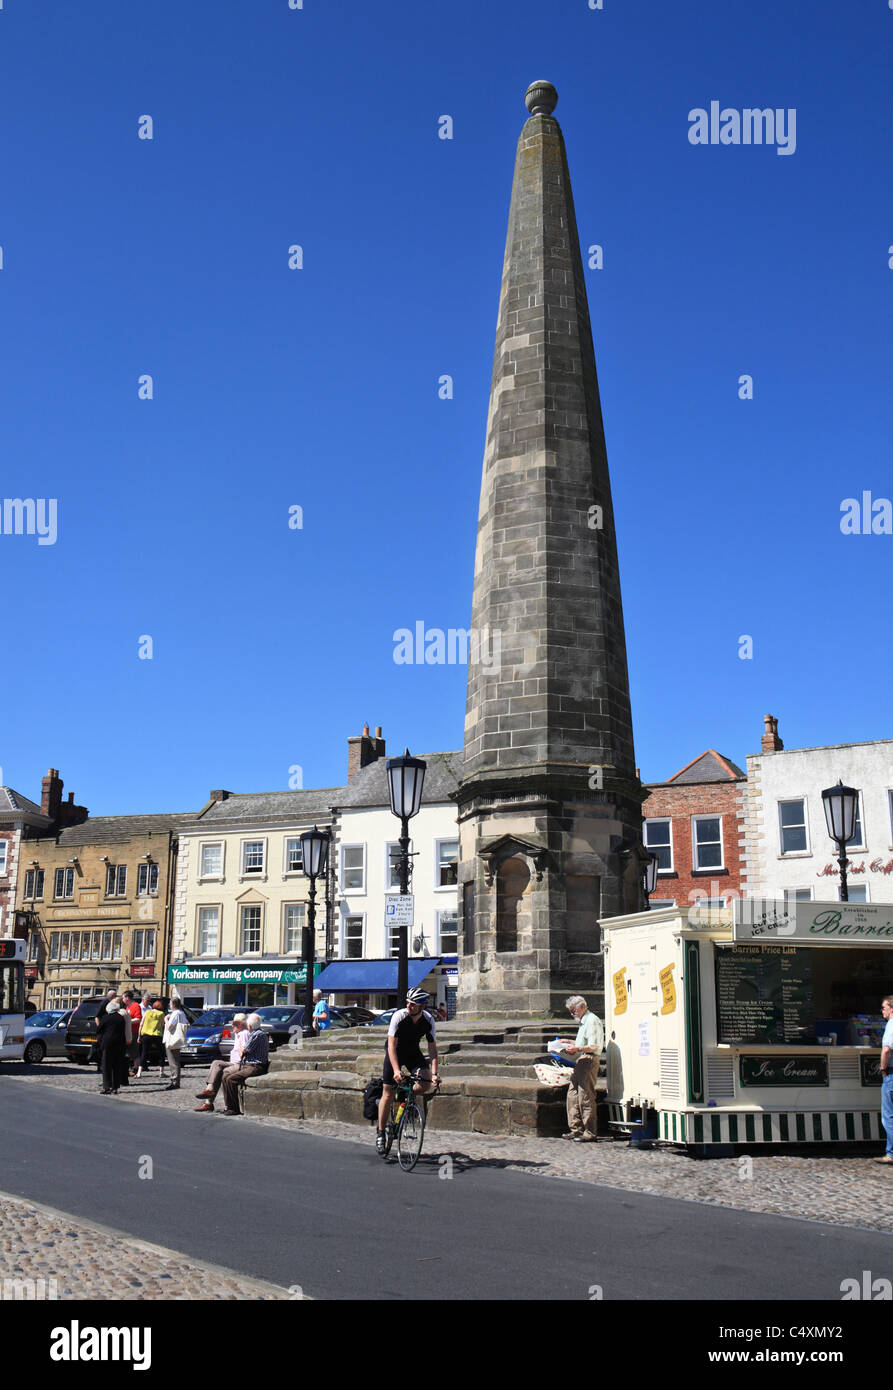 A man cycles past the obelisk in Richmond market place, North Yorkshire, England, UK Stock Photo